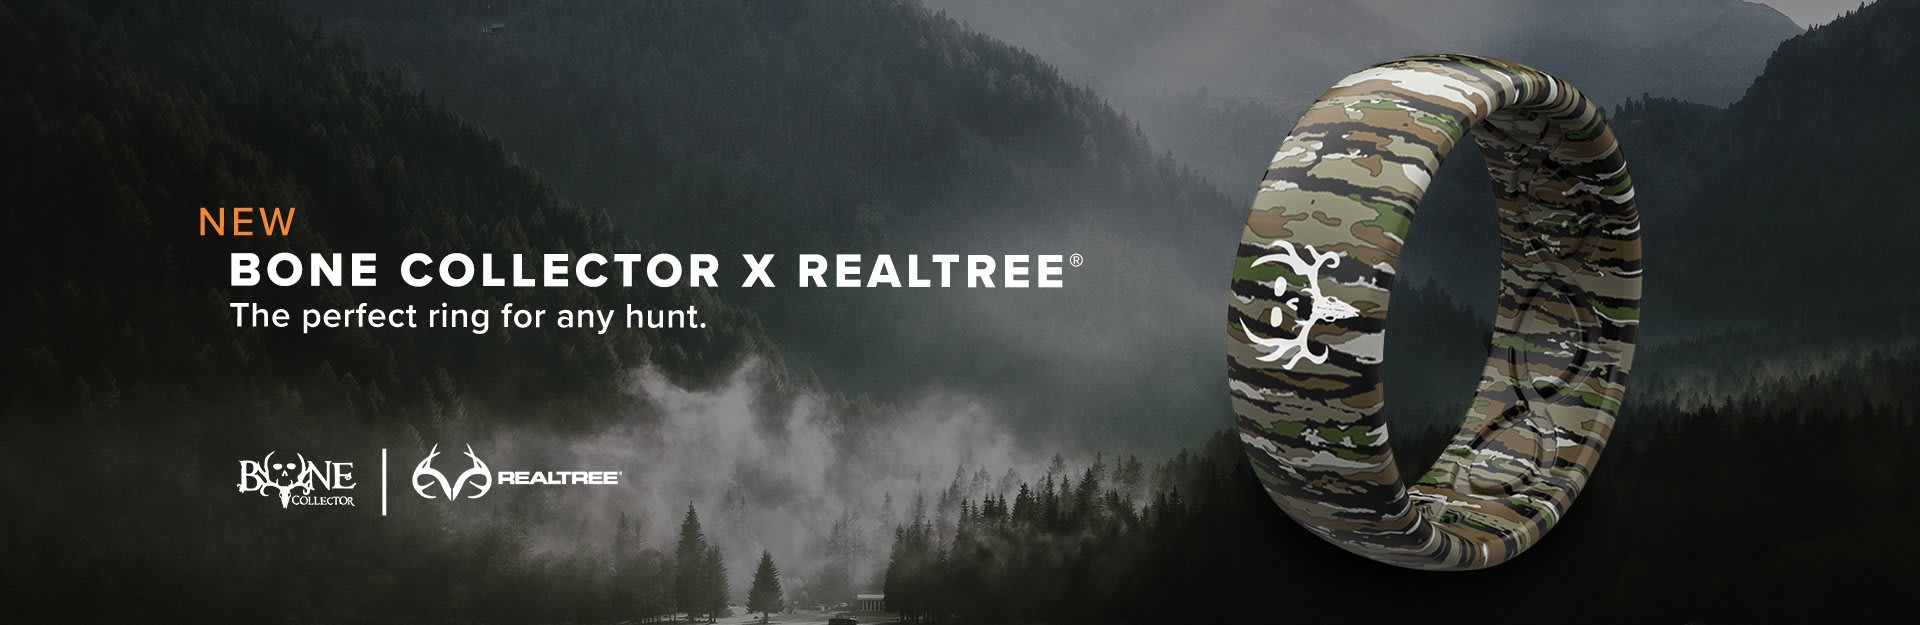 Bone Collector x Realtree, a Bone Collector Bottomlands ring is overlaid on a valley